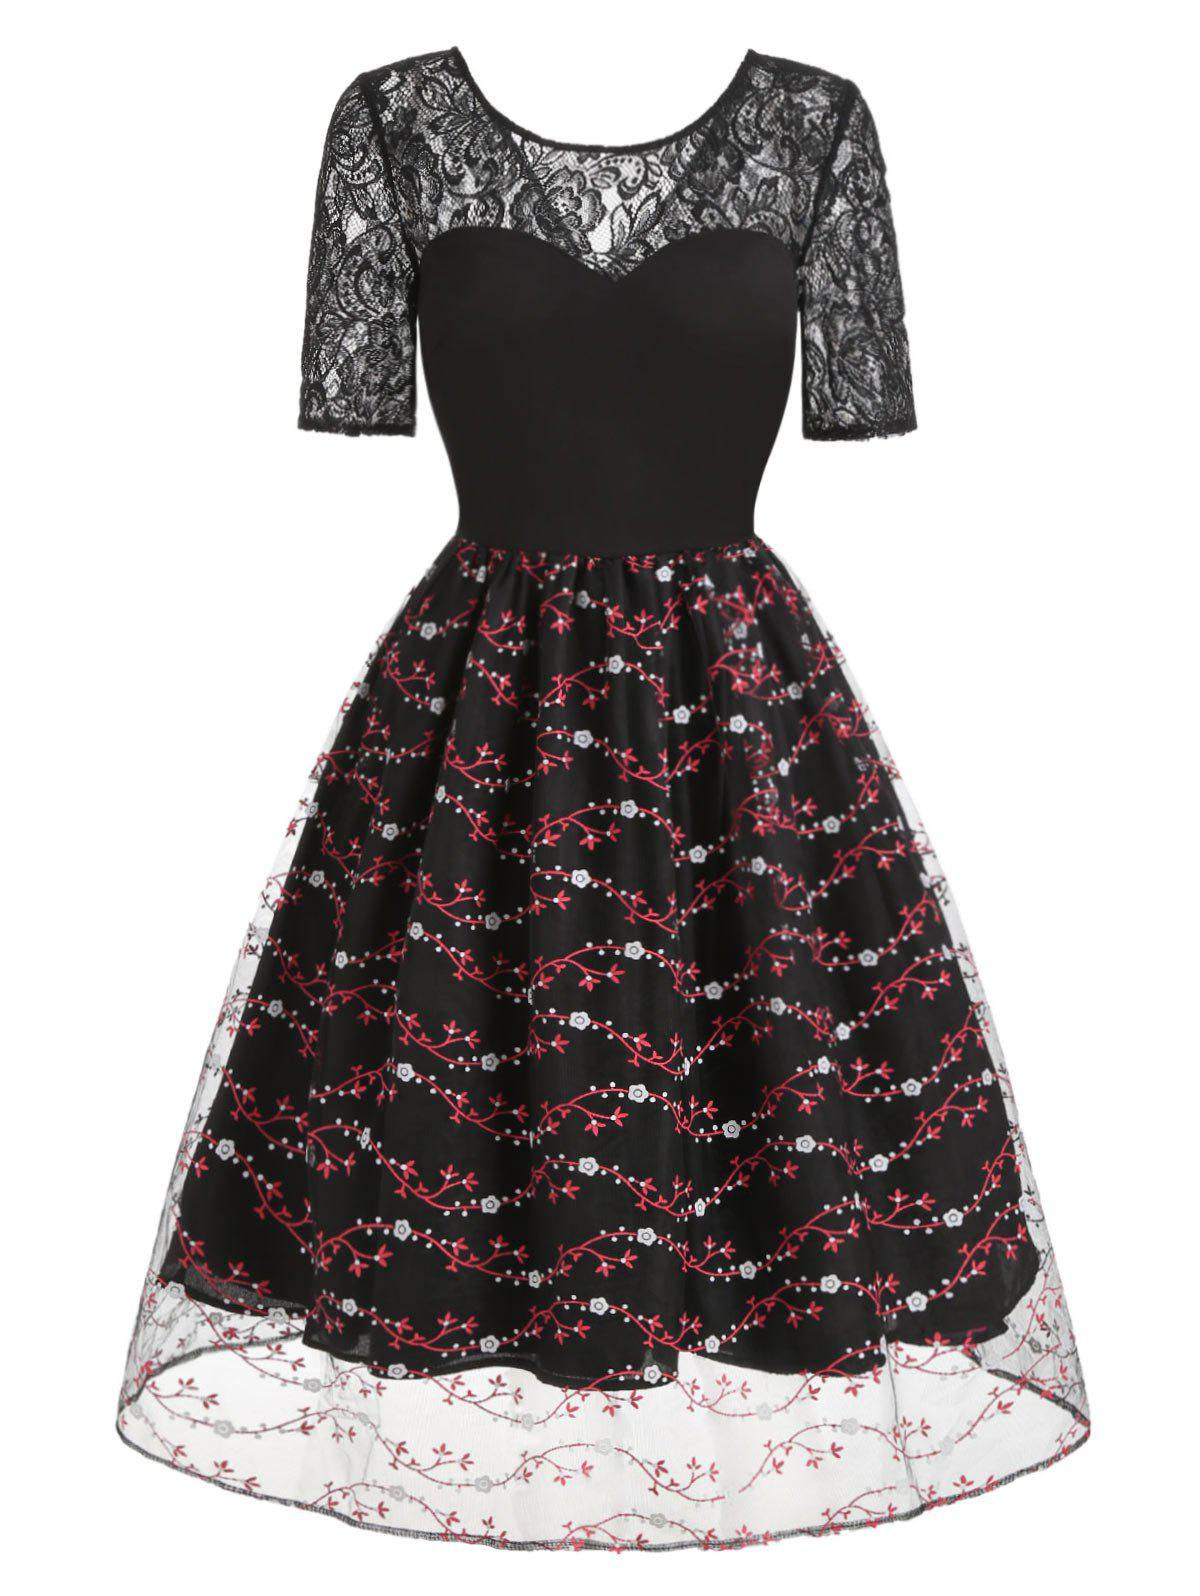 Lace Insert Floral Print Flare Rockabilly Style Vintage Dress - multicolor S